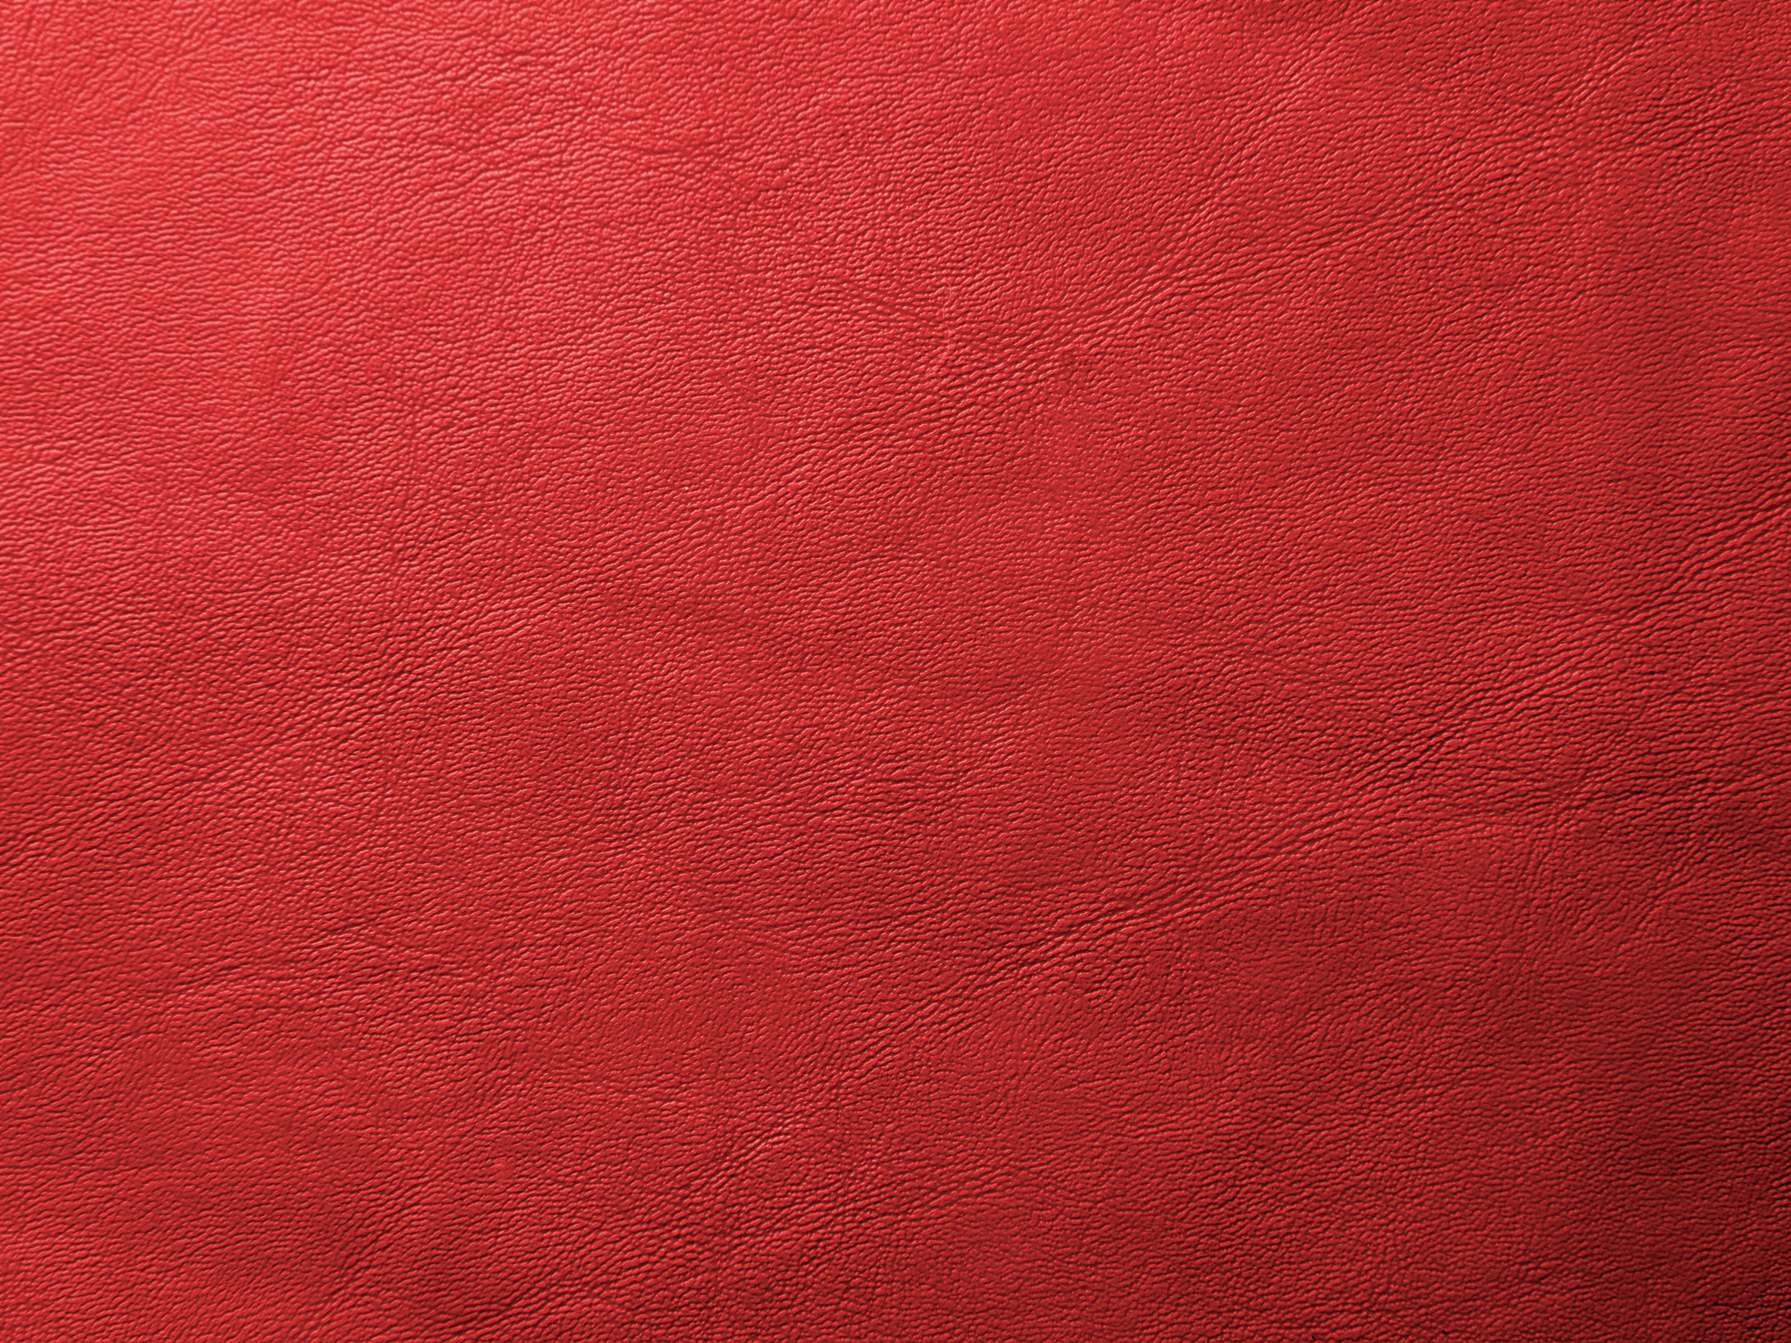 Red Leather Texture PhotoHDX